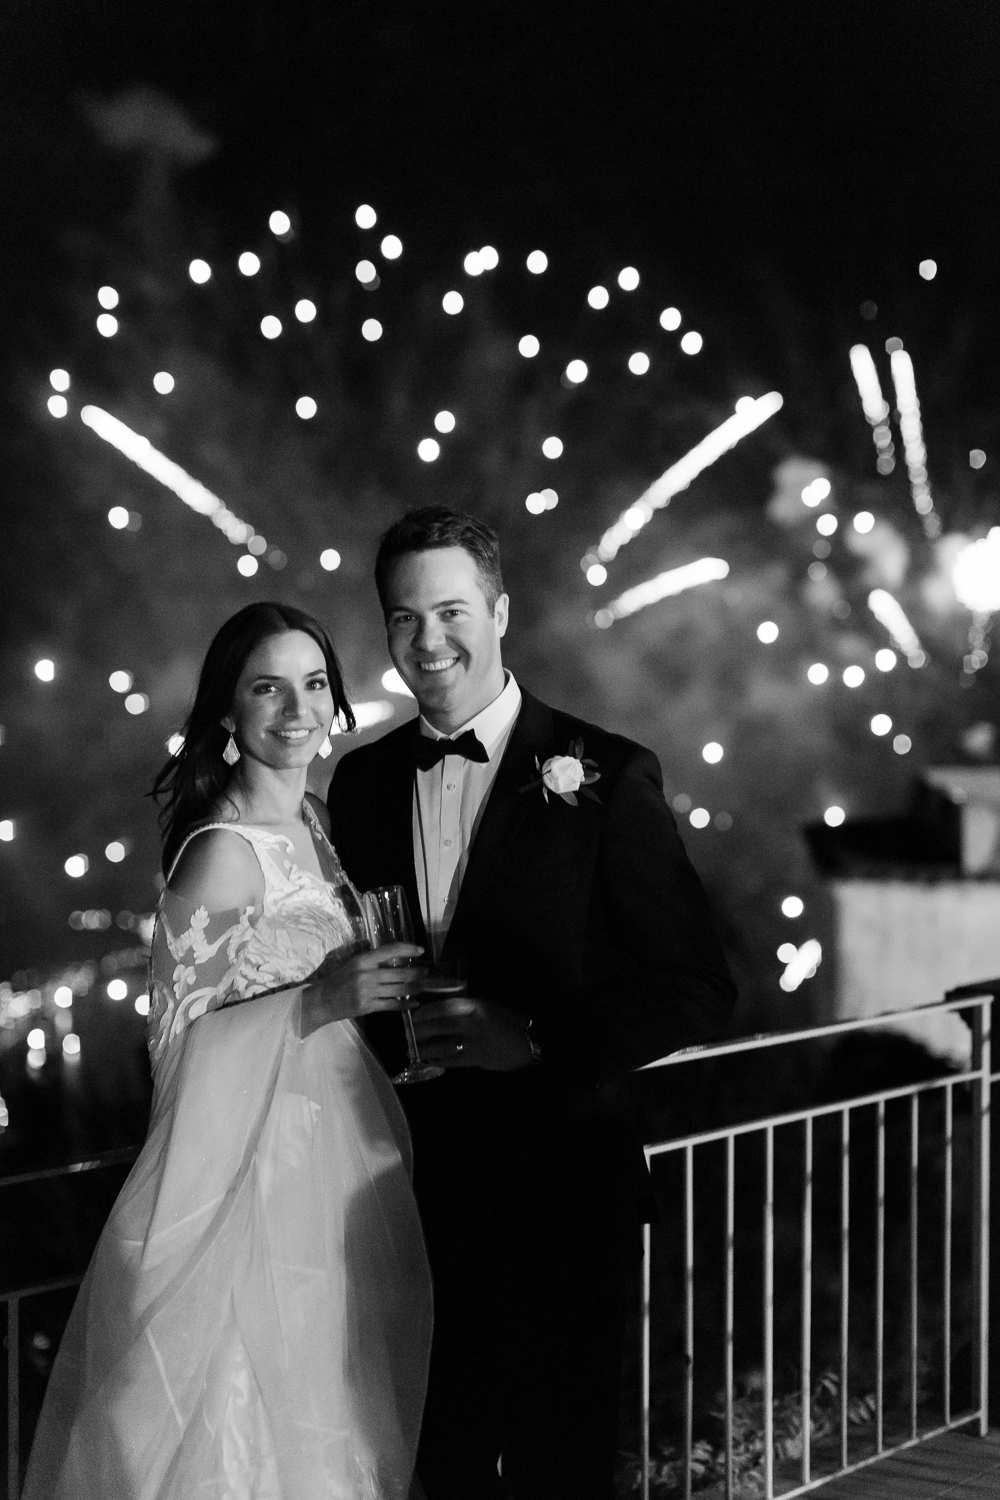 ravello-wedding-belmond-hotel-caruso-wedding-fireworks